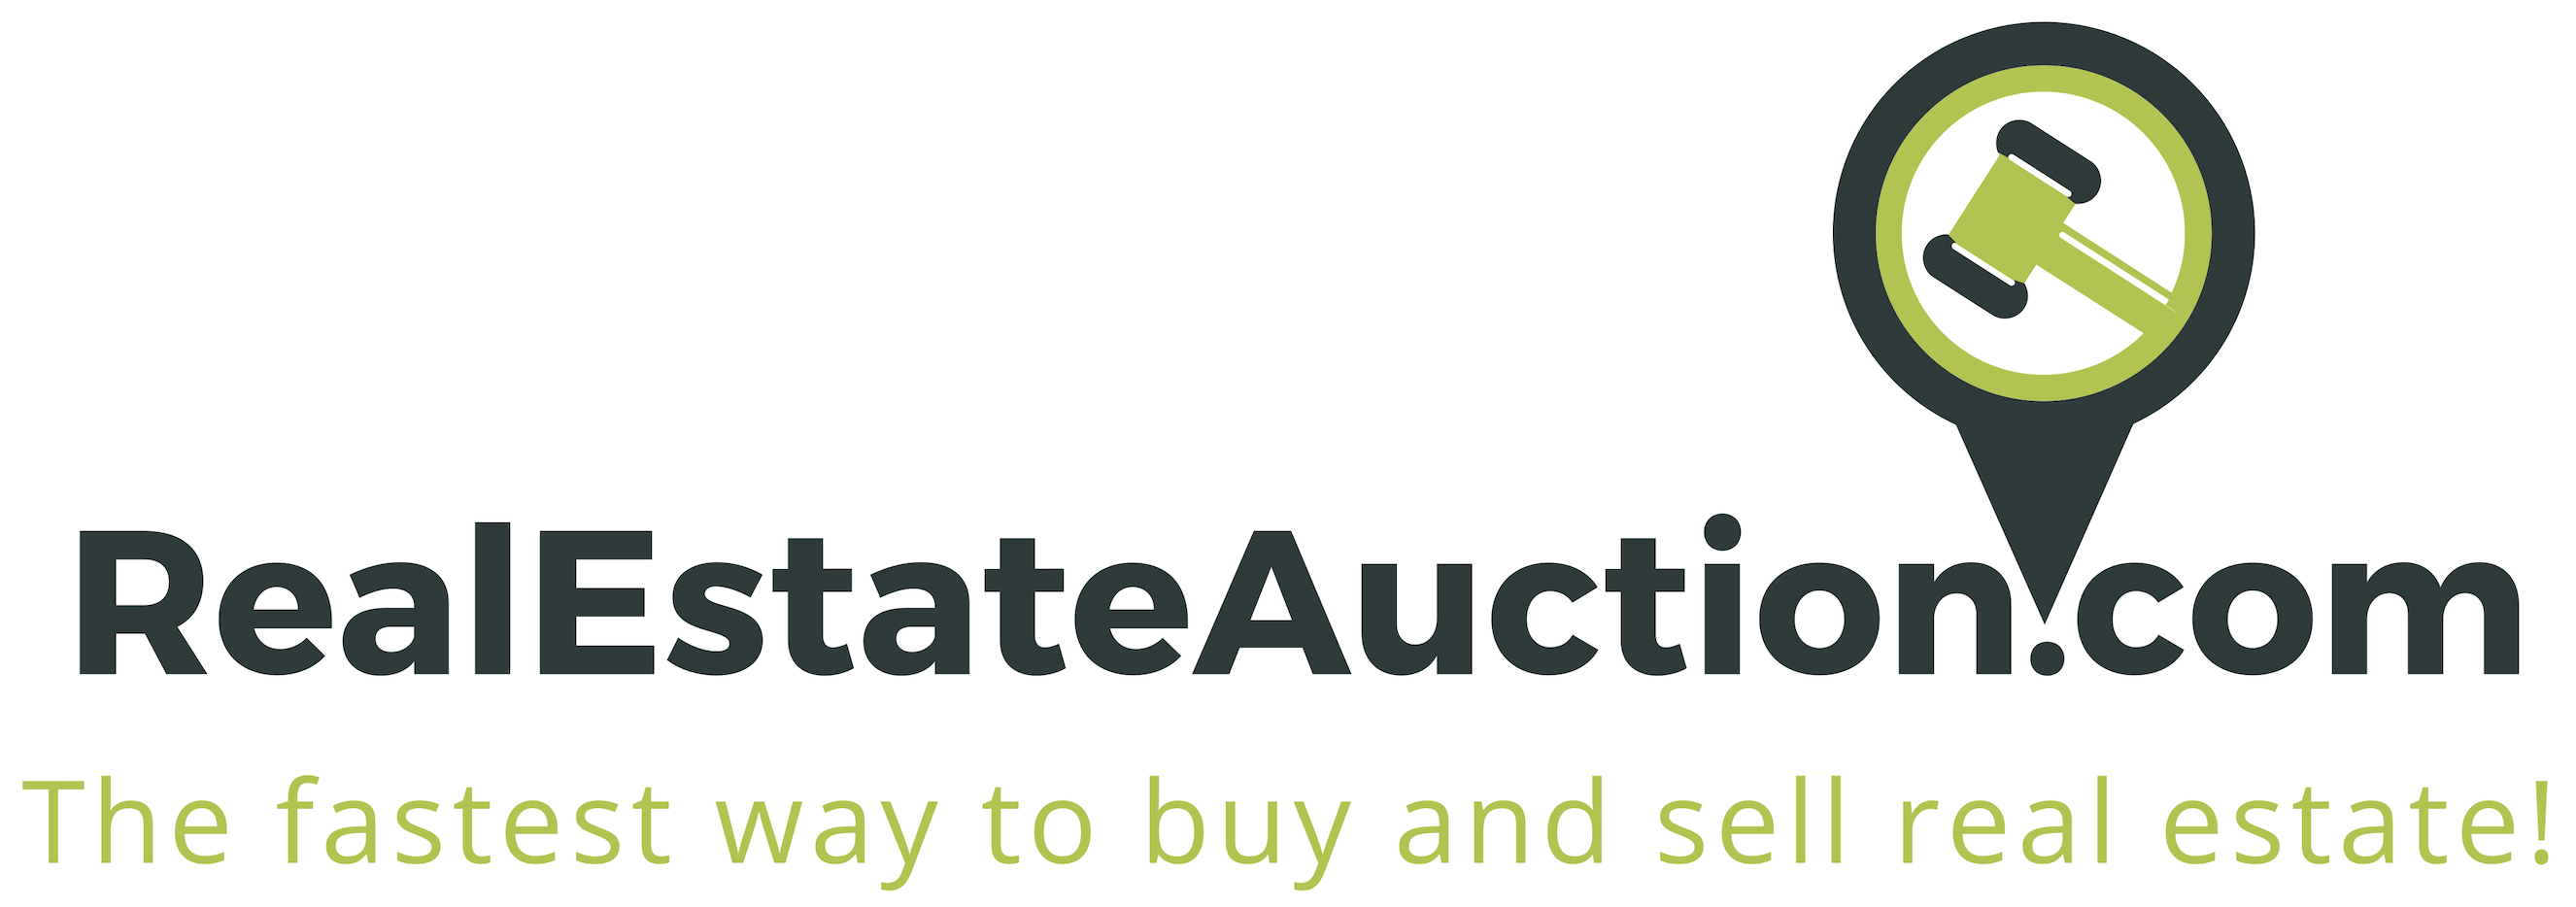 RealEstateAuction.com Hdr Logo